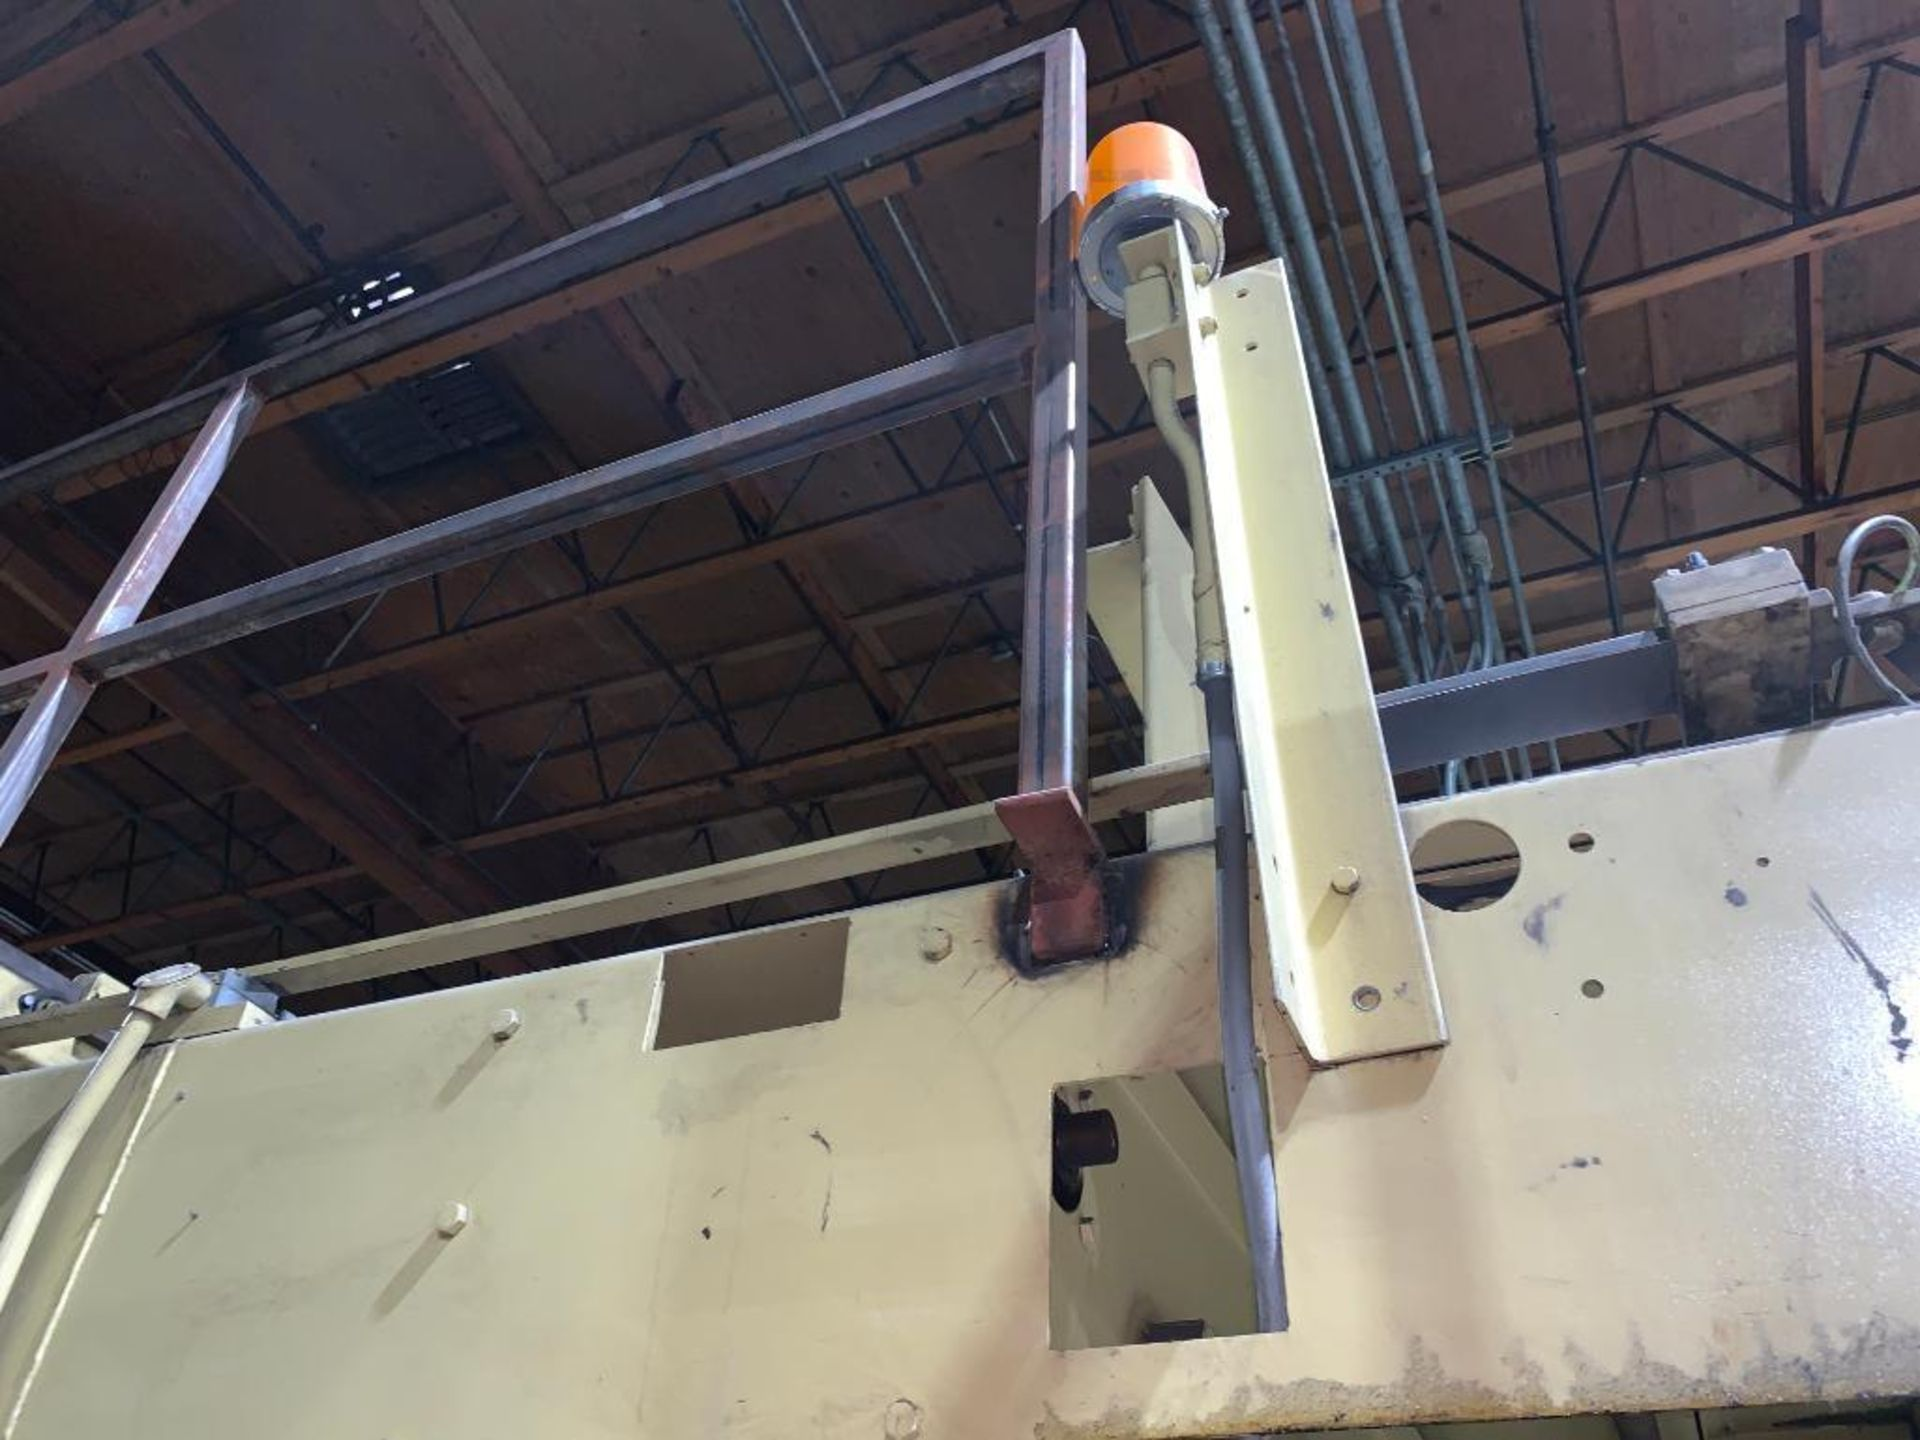 1992 Currie top to bottom palletizer, machine number LSP-5-1177 - Image 7 of 53